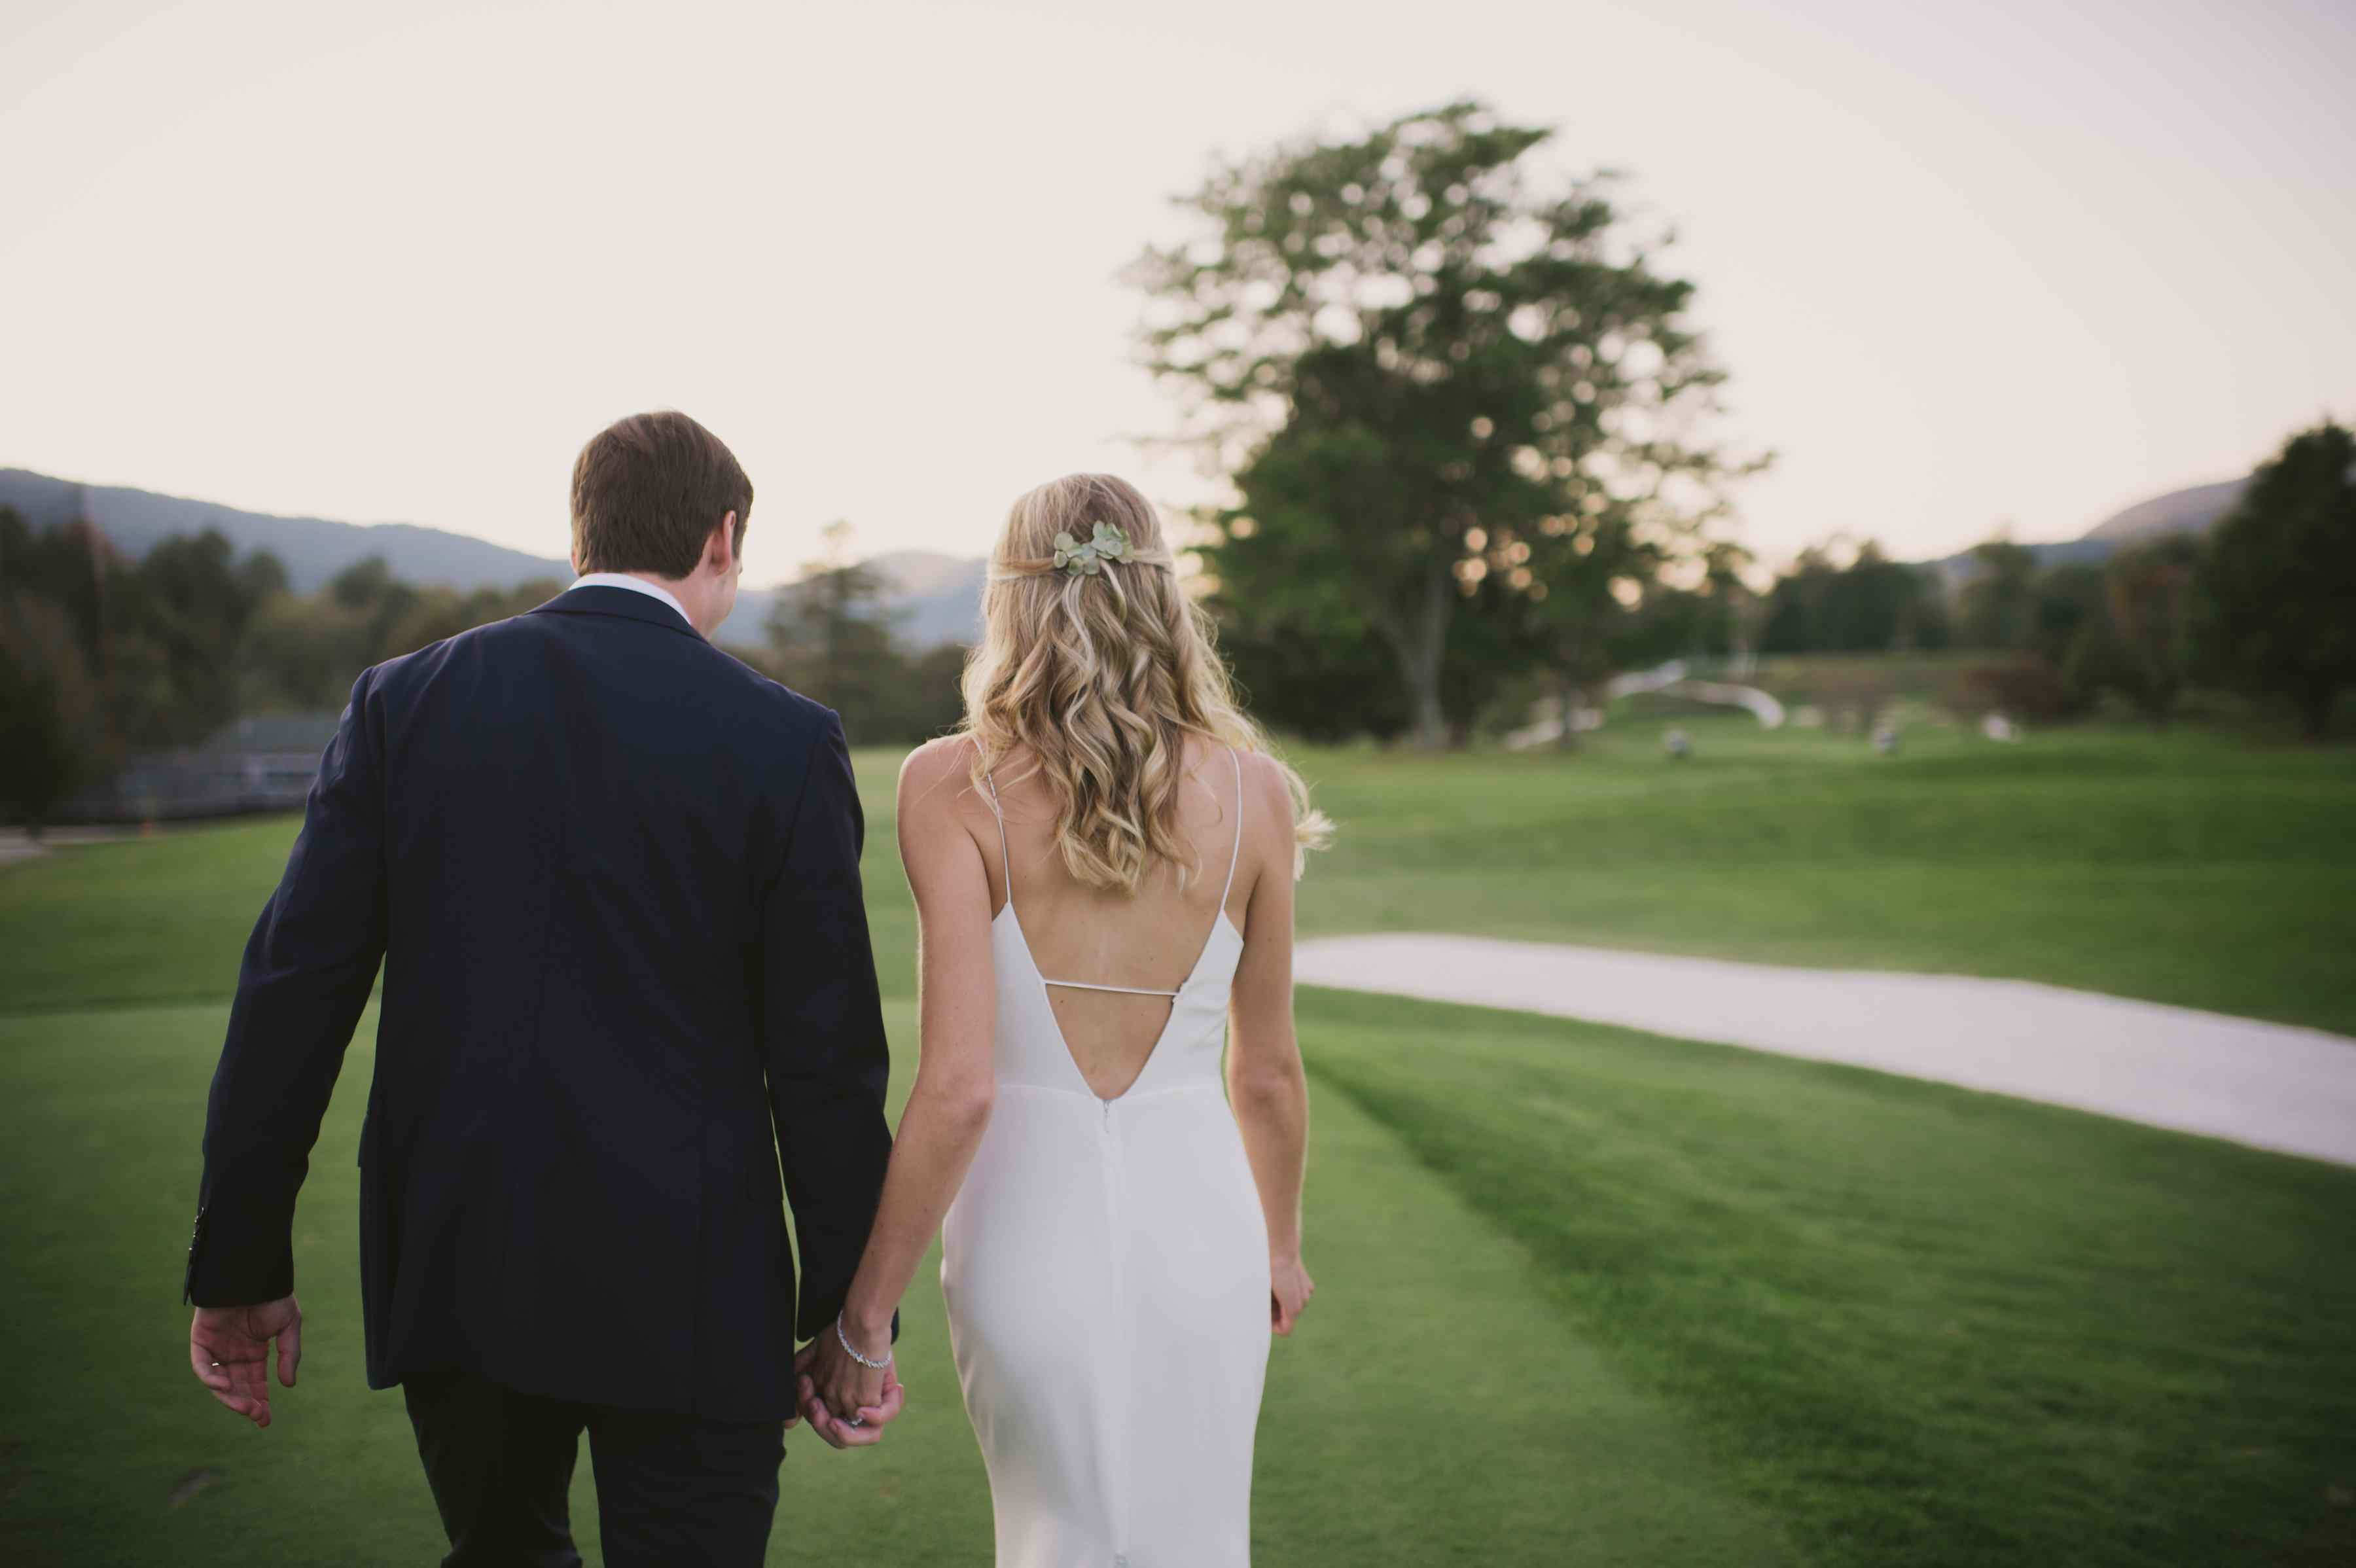 <p>bride and groom on golf course</p><br><br>